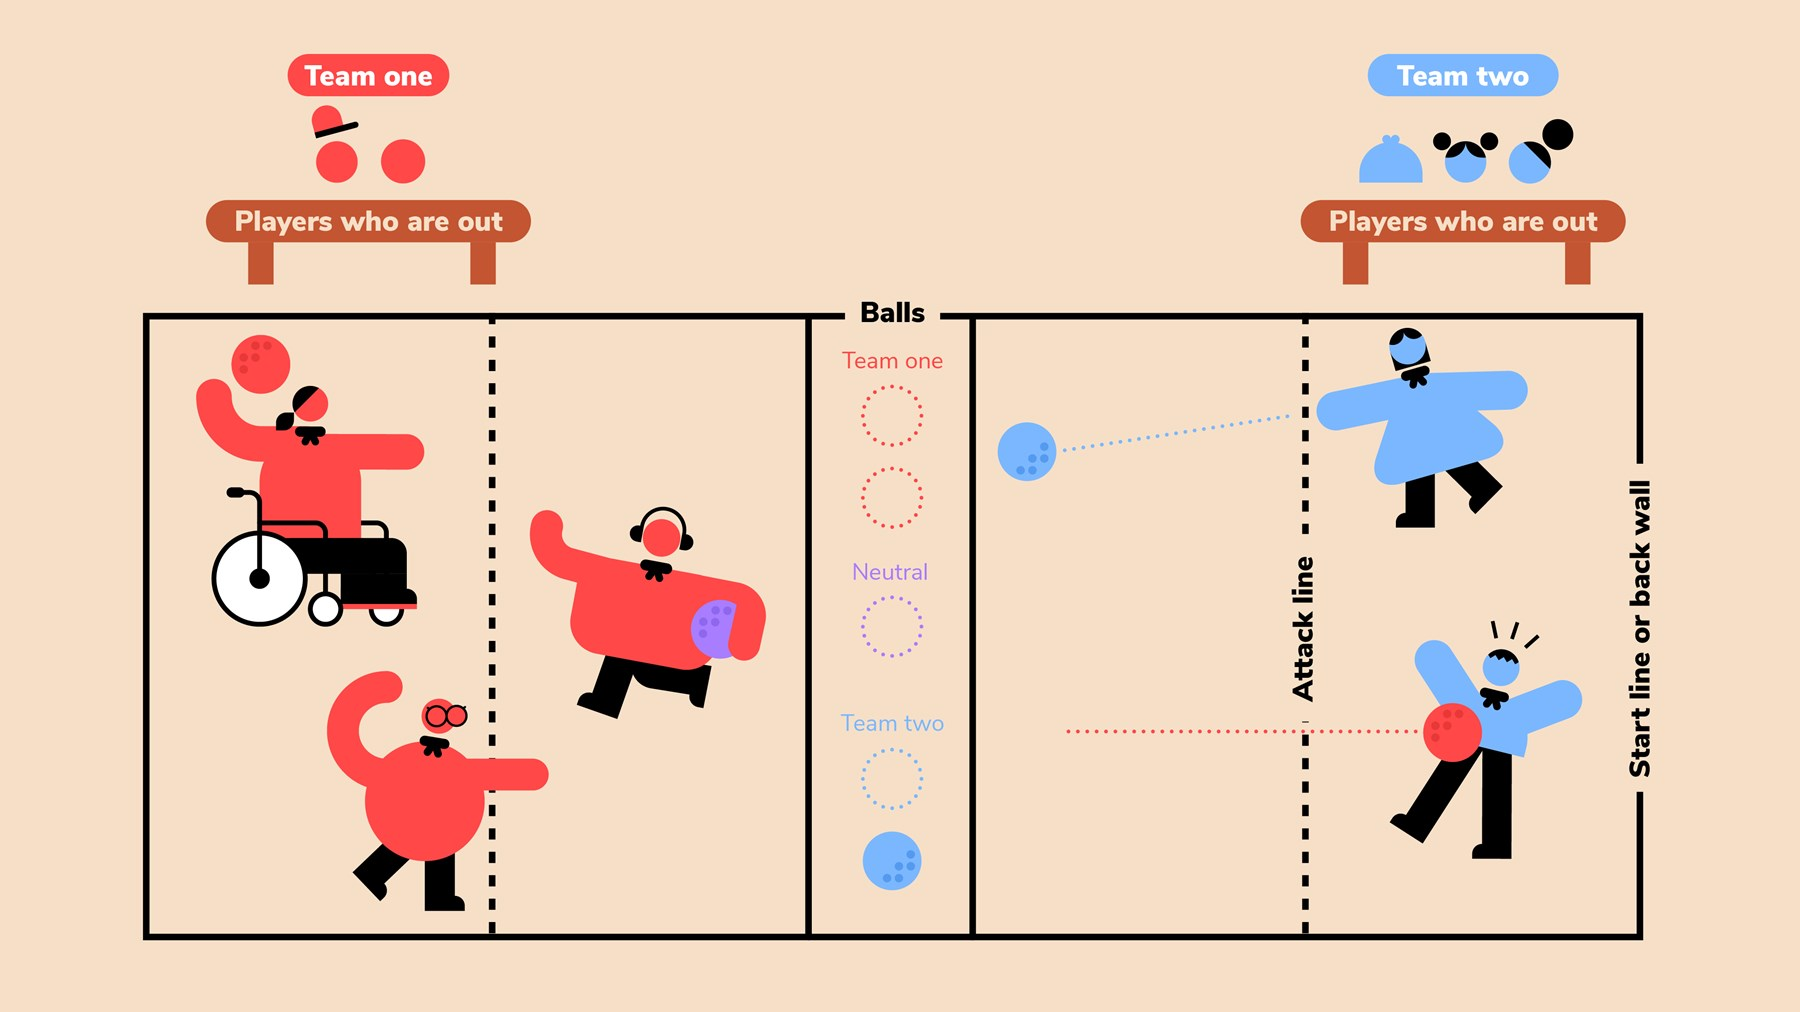 A court diagram for the game 'Dodgeball'.